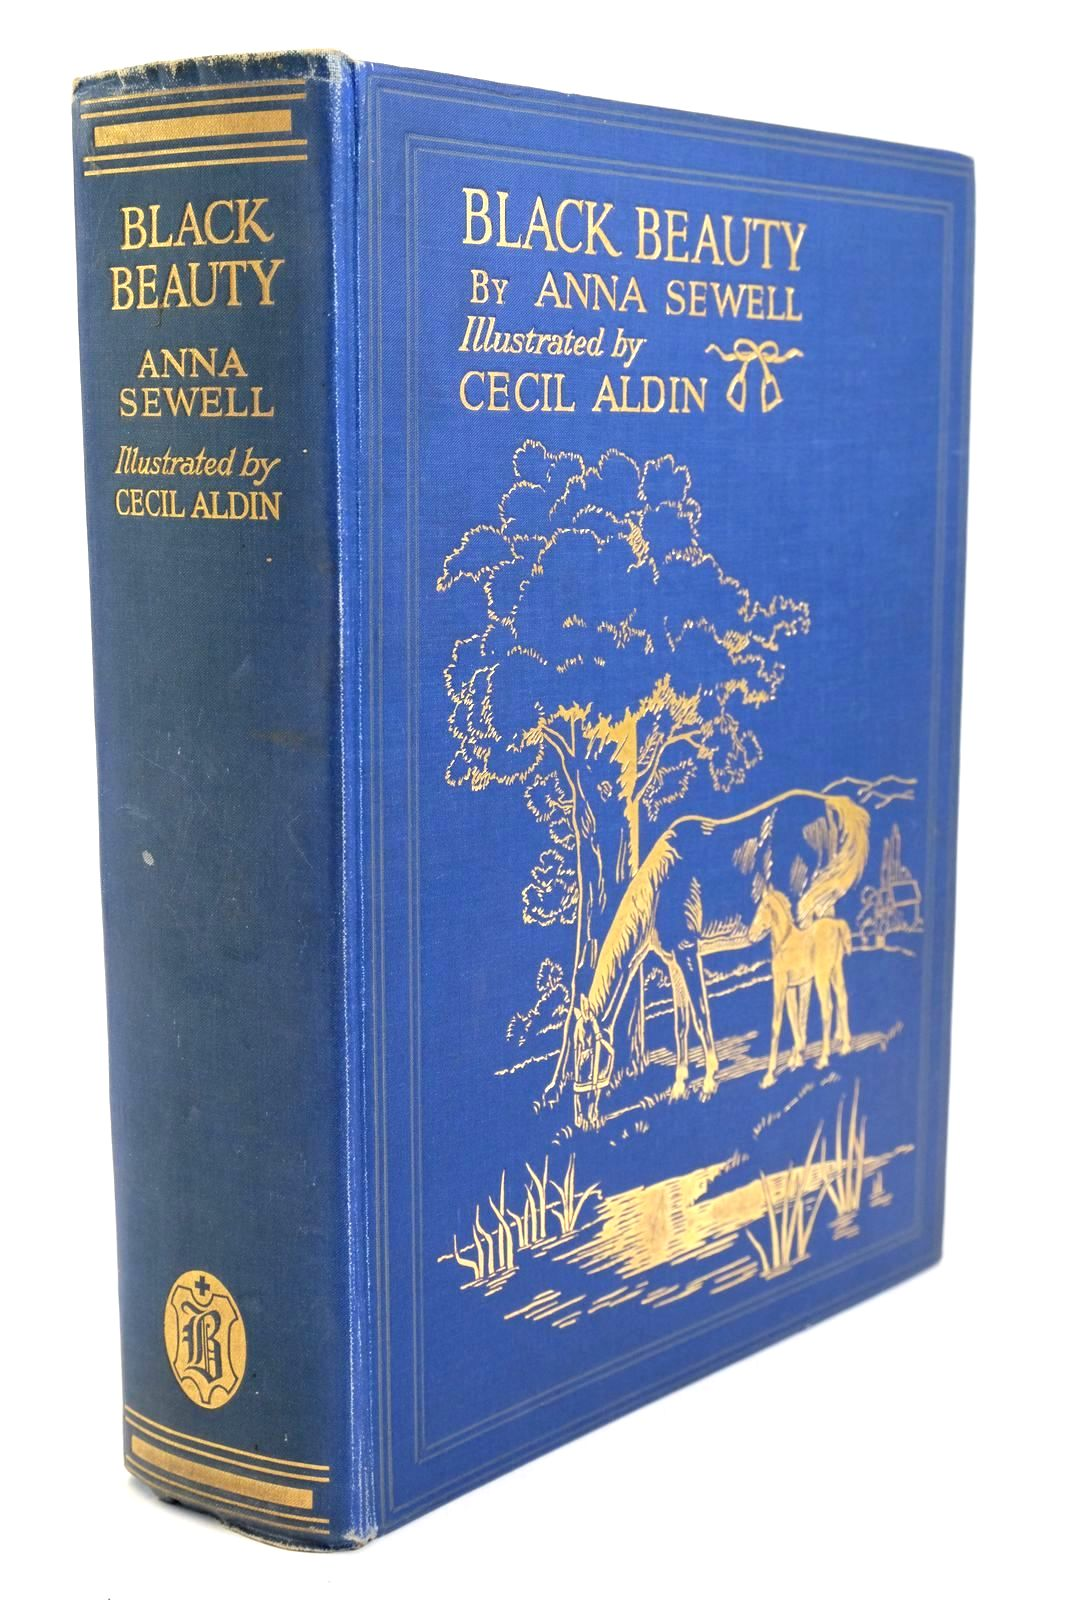 Photo of BLACK BEAUTY written by Sewell, Anna illustrated by Aldin, Cecil published by Jarrolds, Boots the Chemists (STOCK CODE: 1321401)  for sale by Stella & Rose's Books